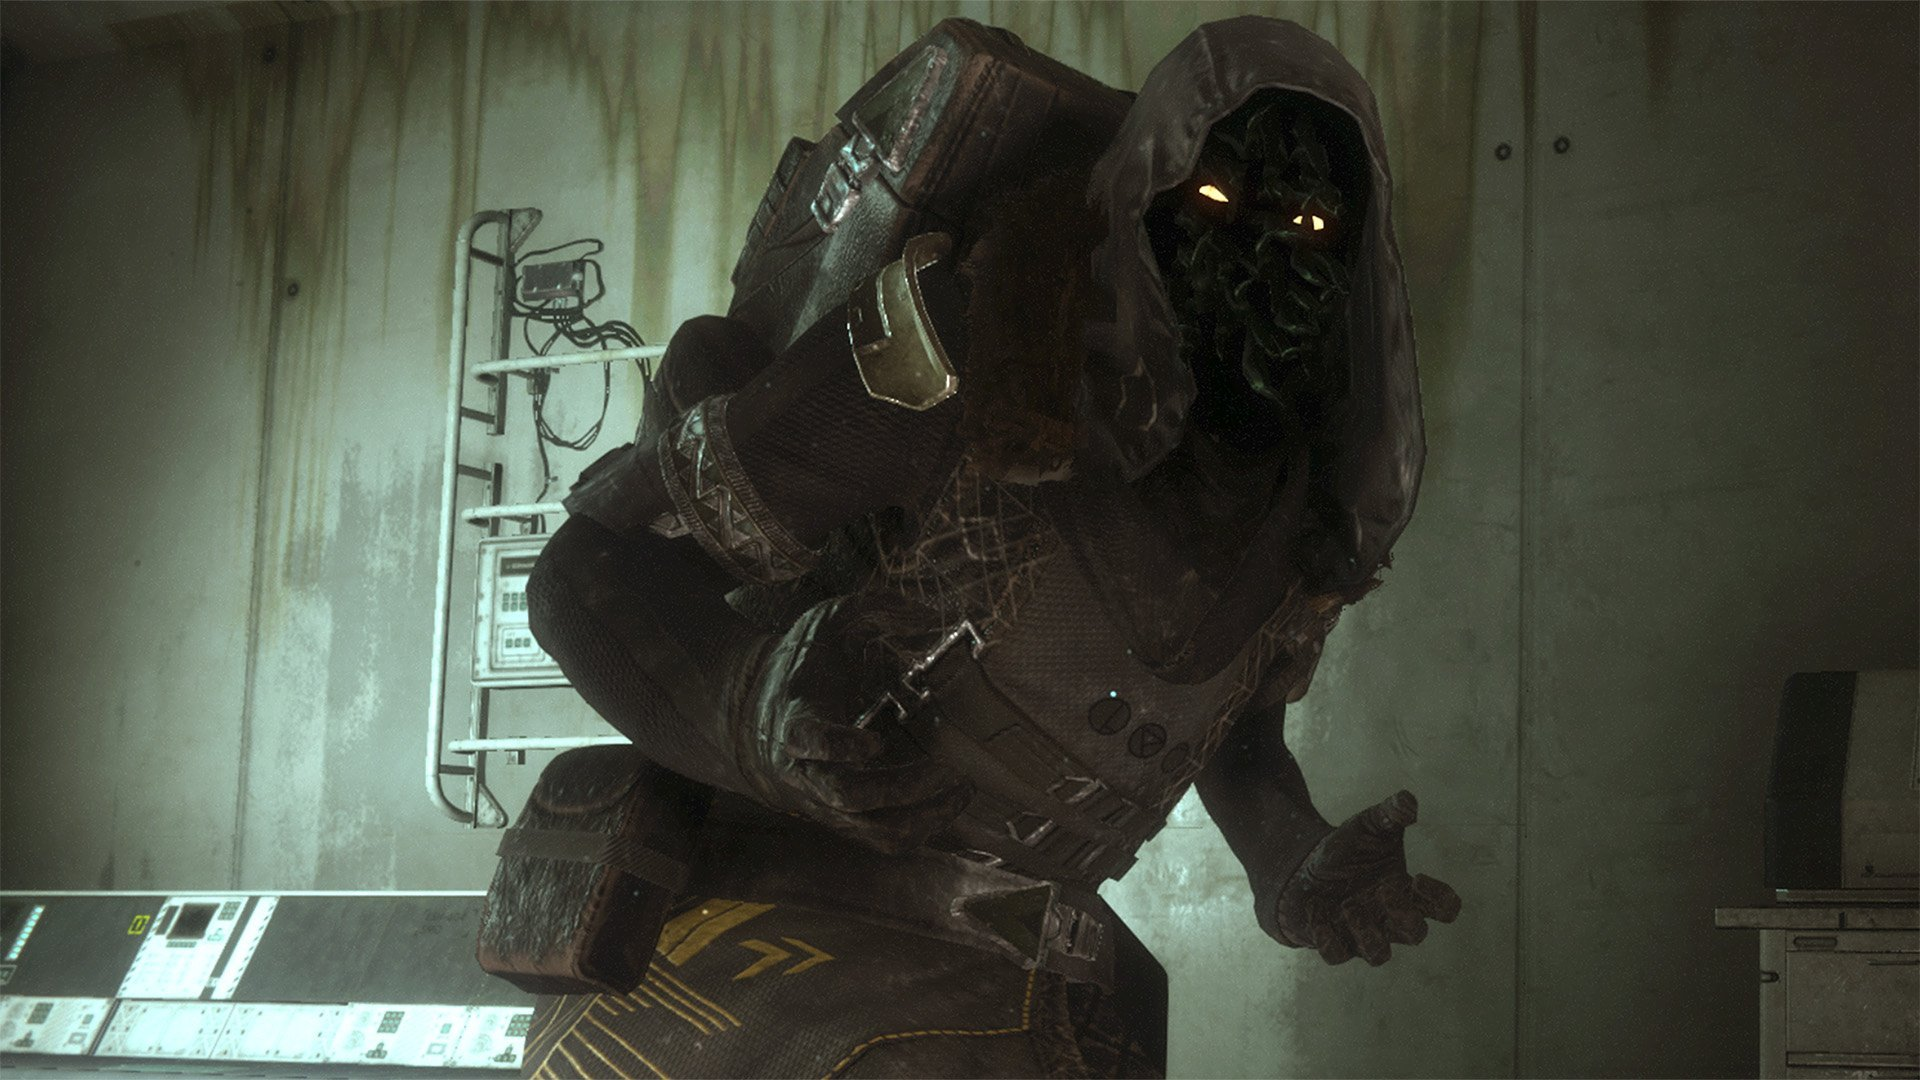 What Xur is selling in Destiny 2 - April 3, 2020